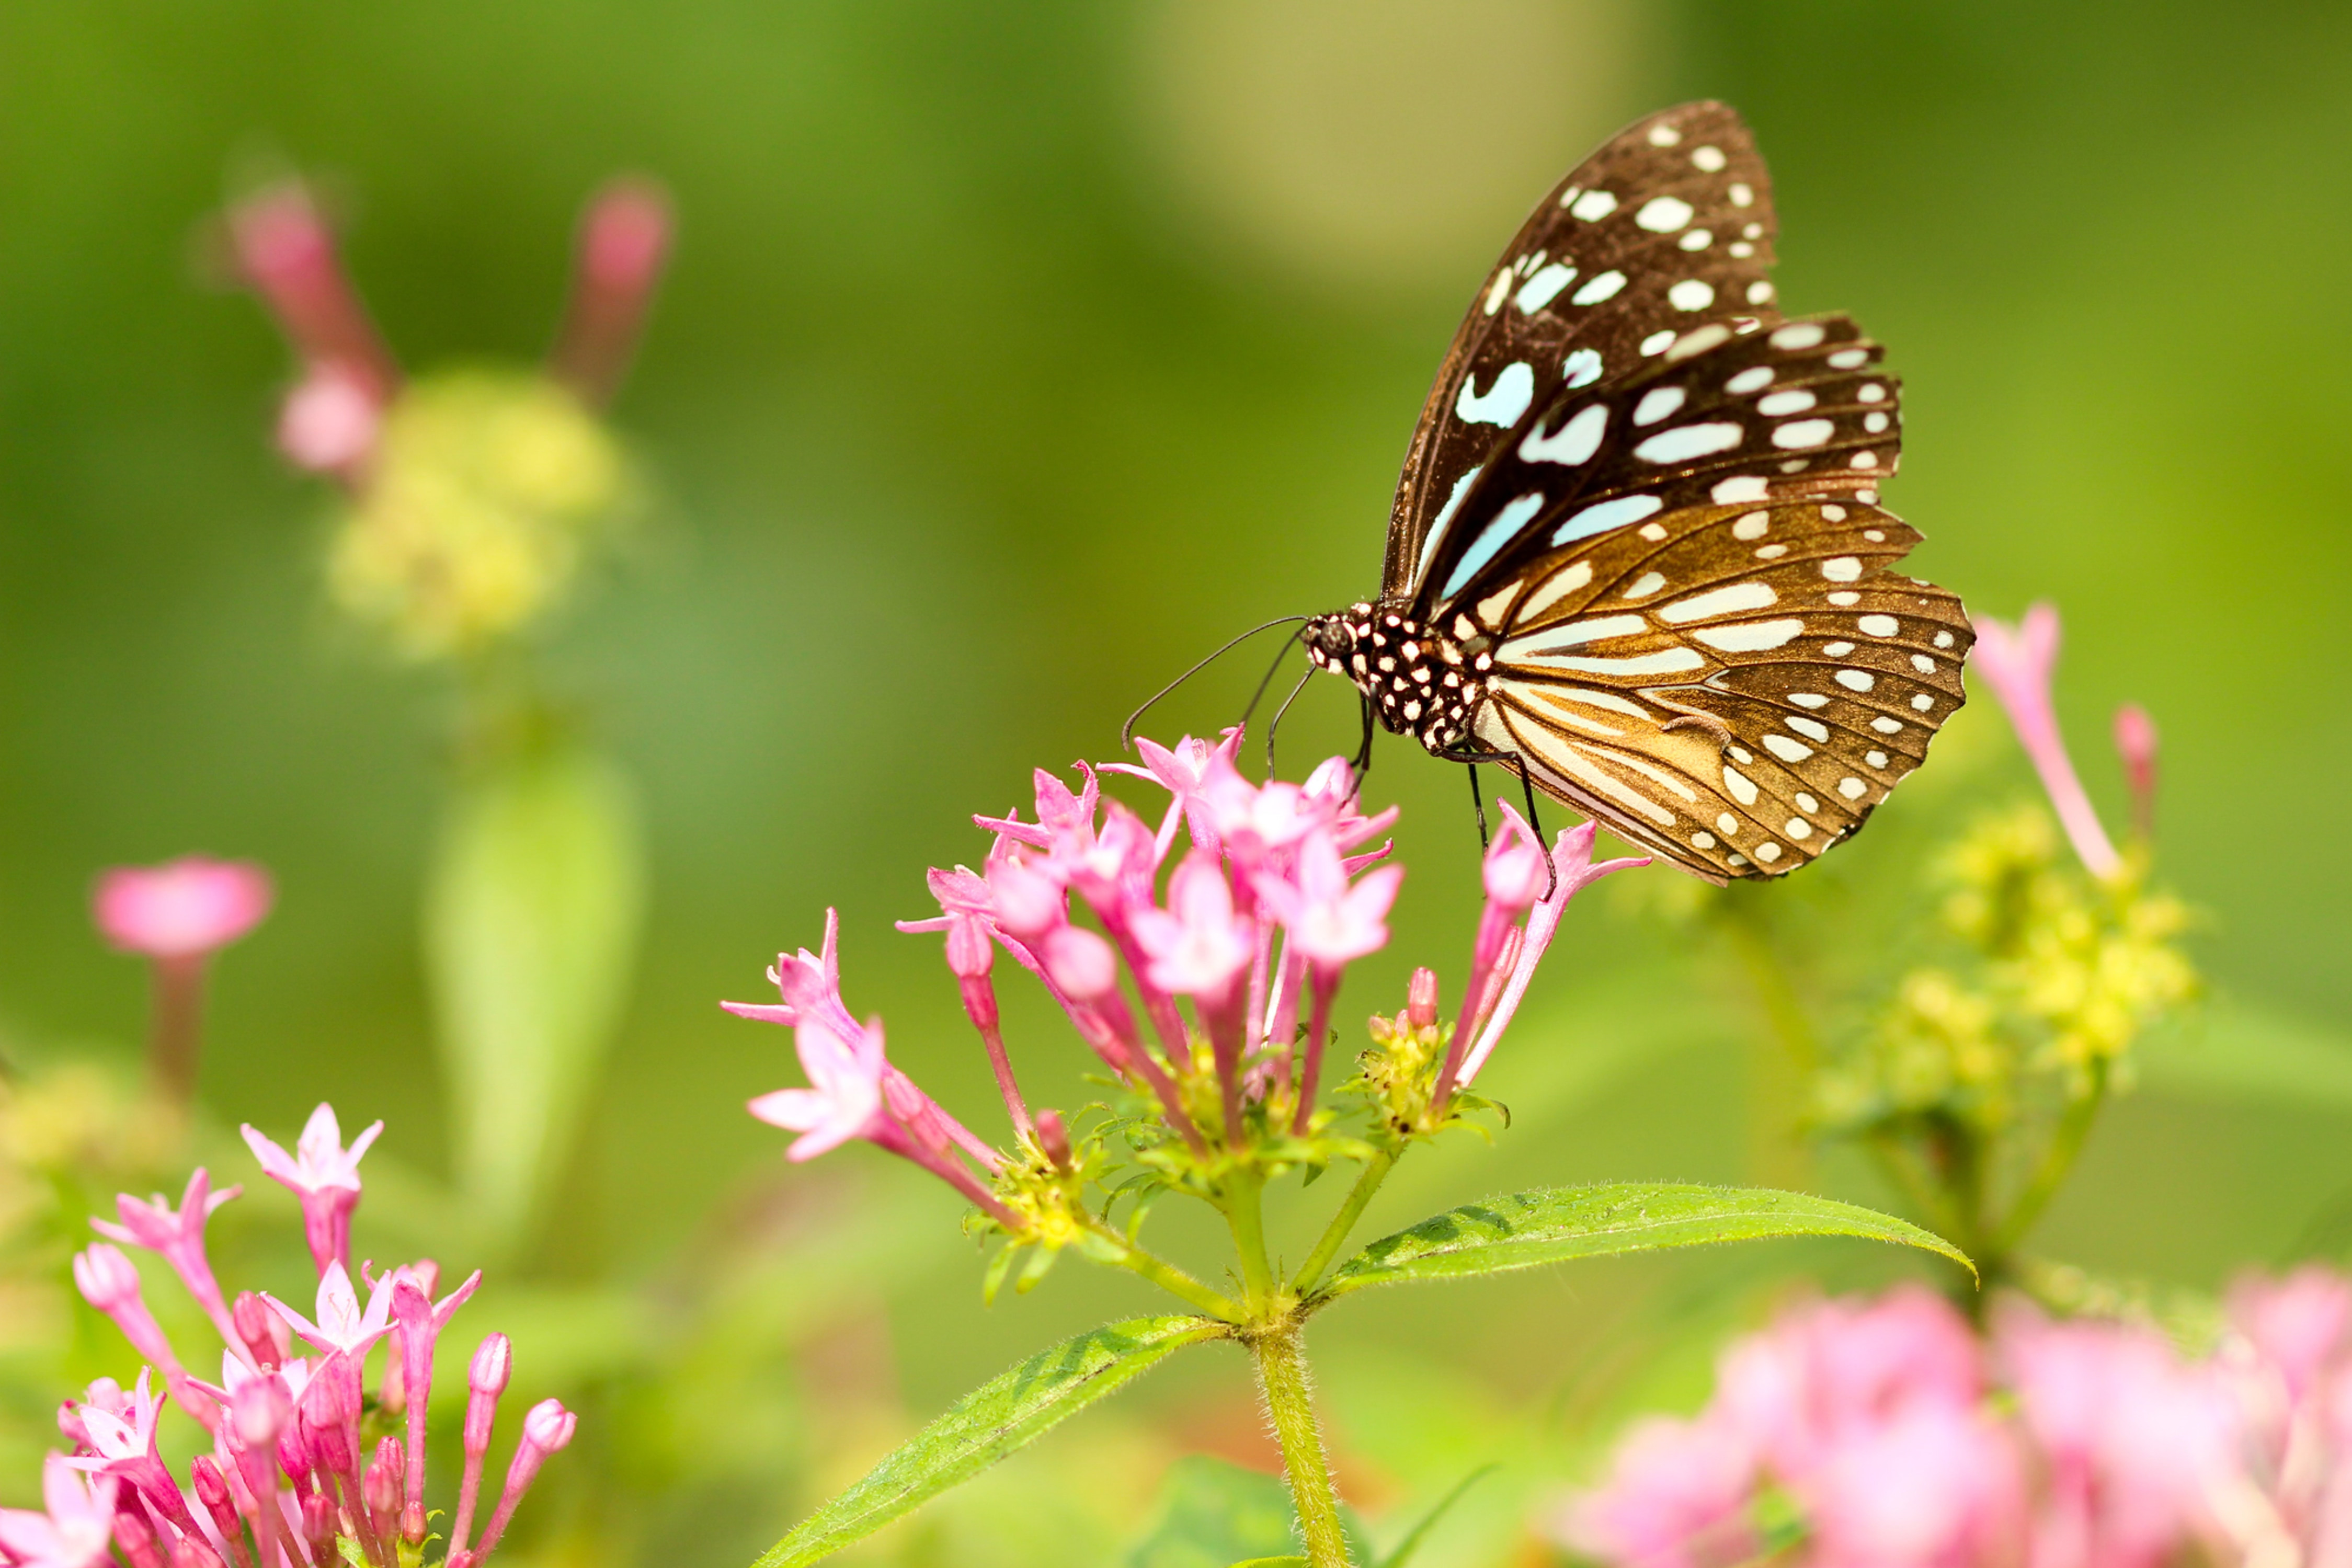 Beautiful Butterfly Image Transformation